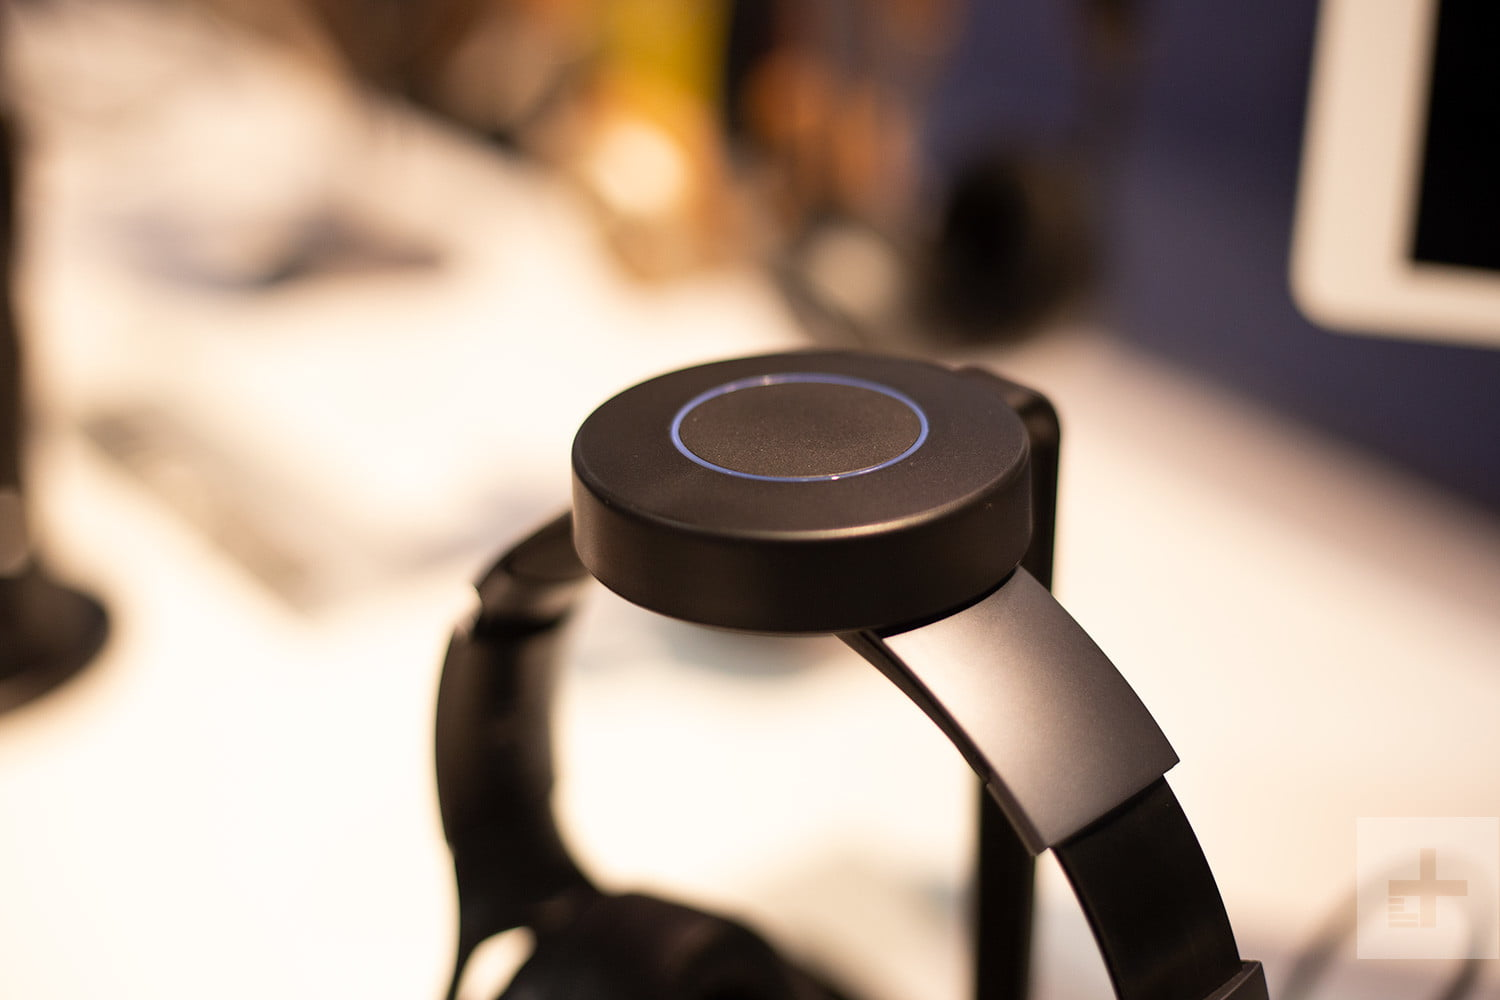 hivi aw 85 headphones wireless charger ces 2019 3